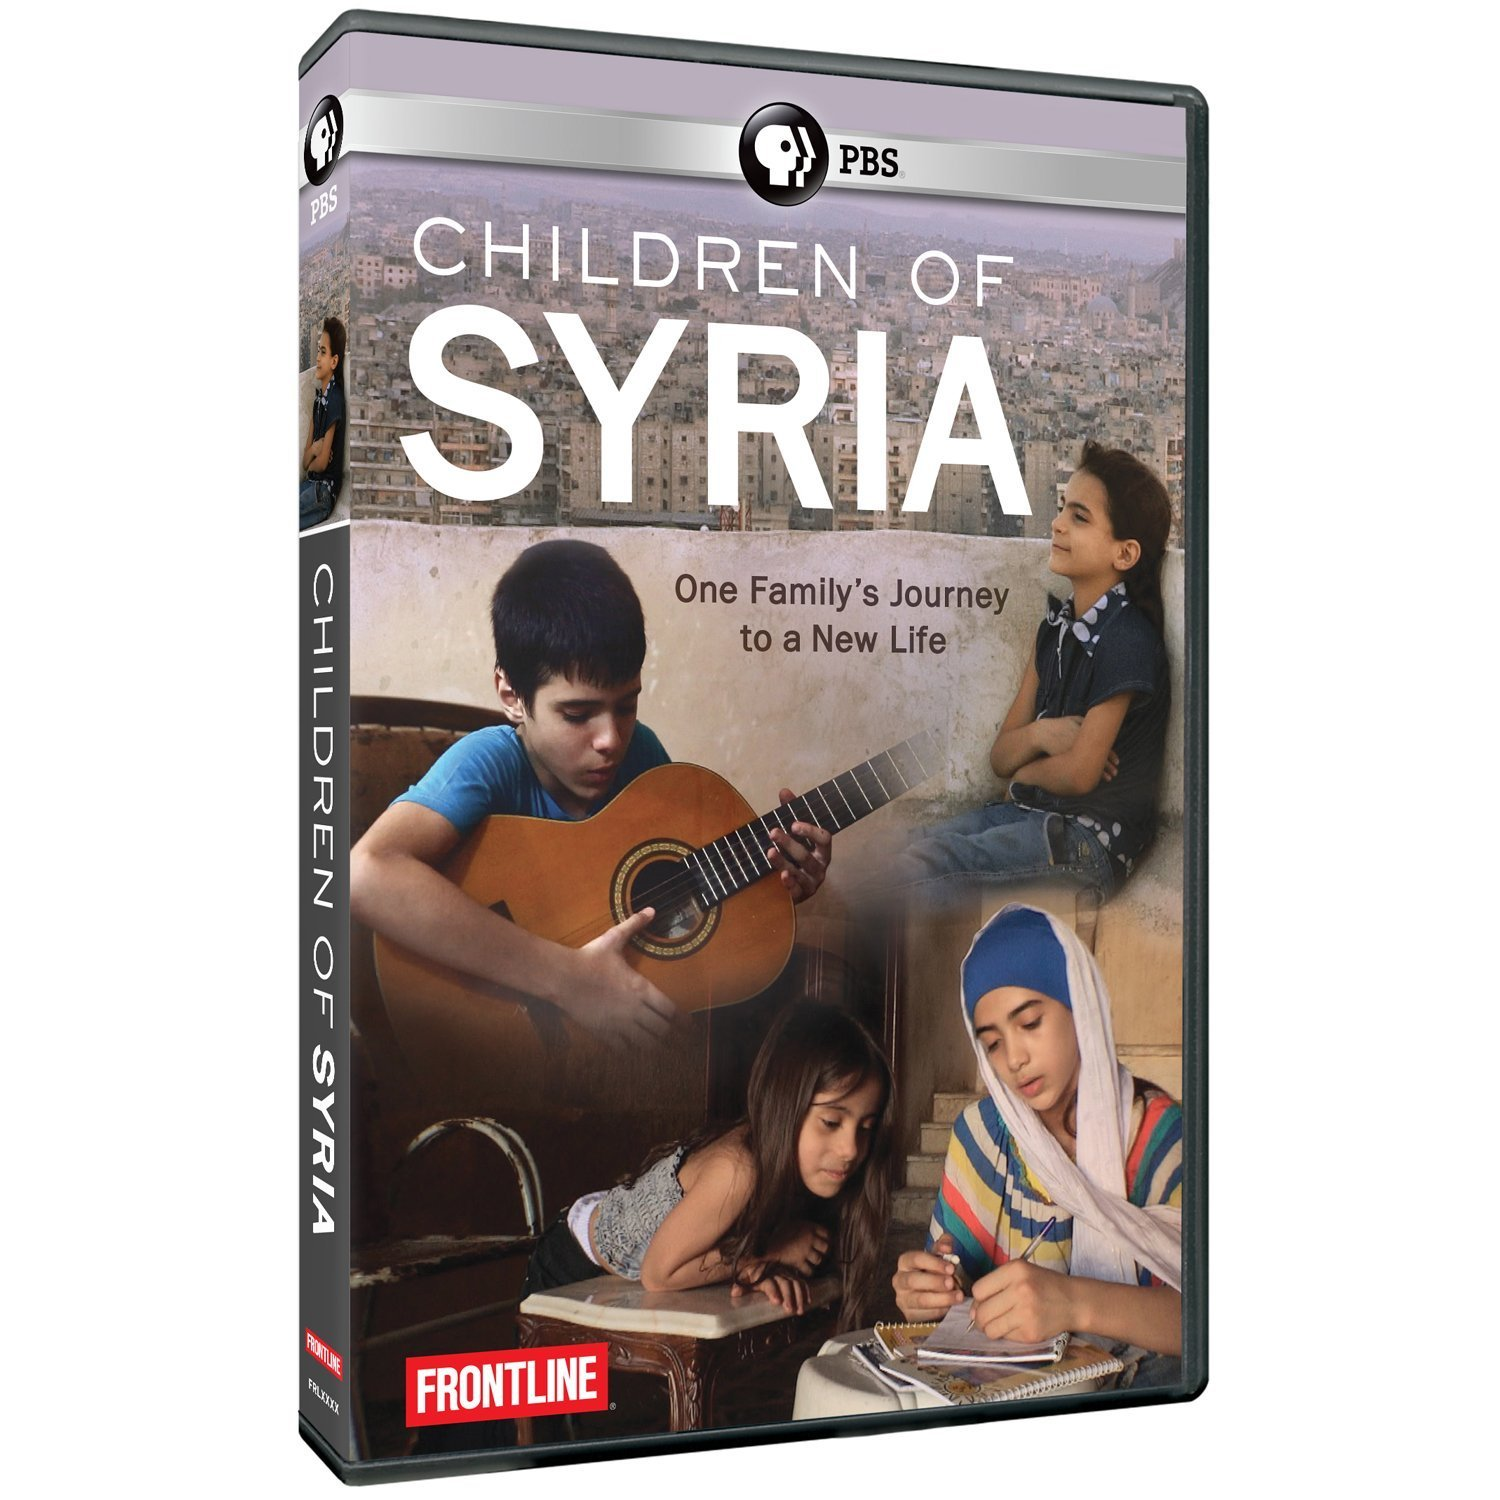 Children of Syria: One Family's Journey to a New Life